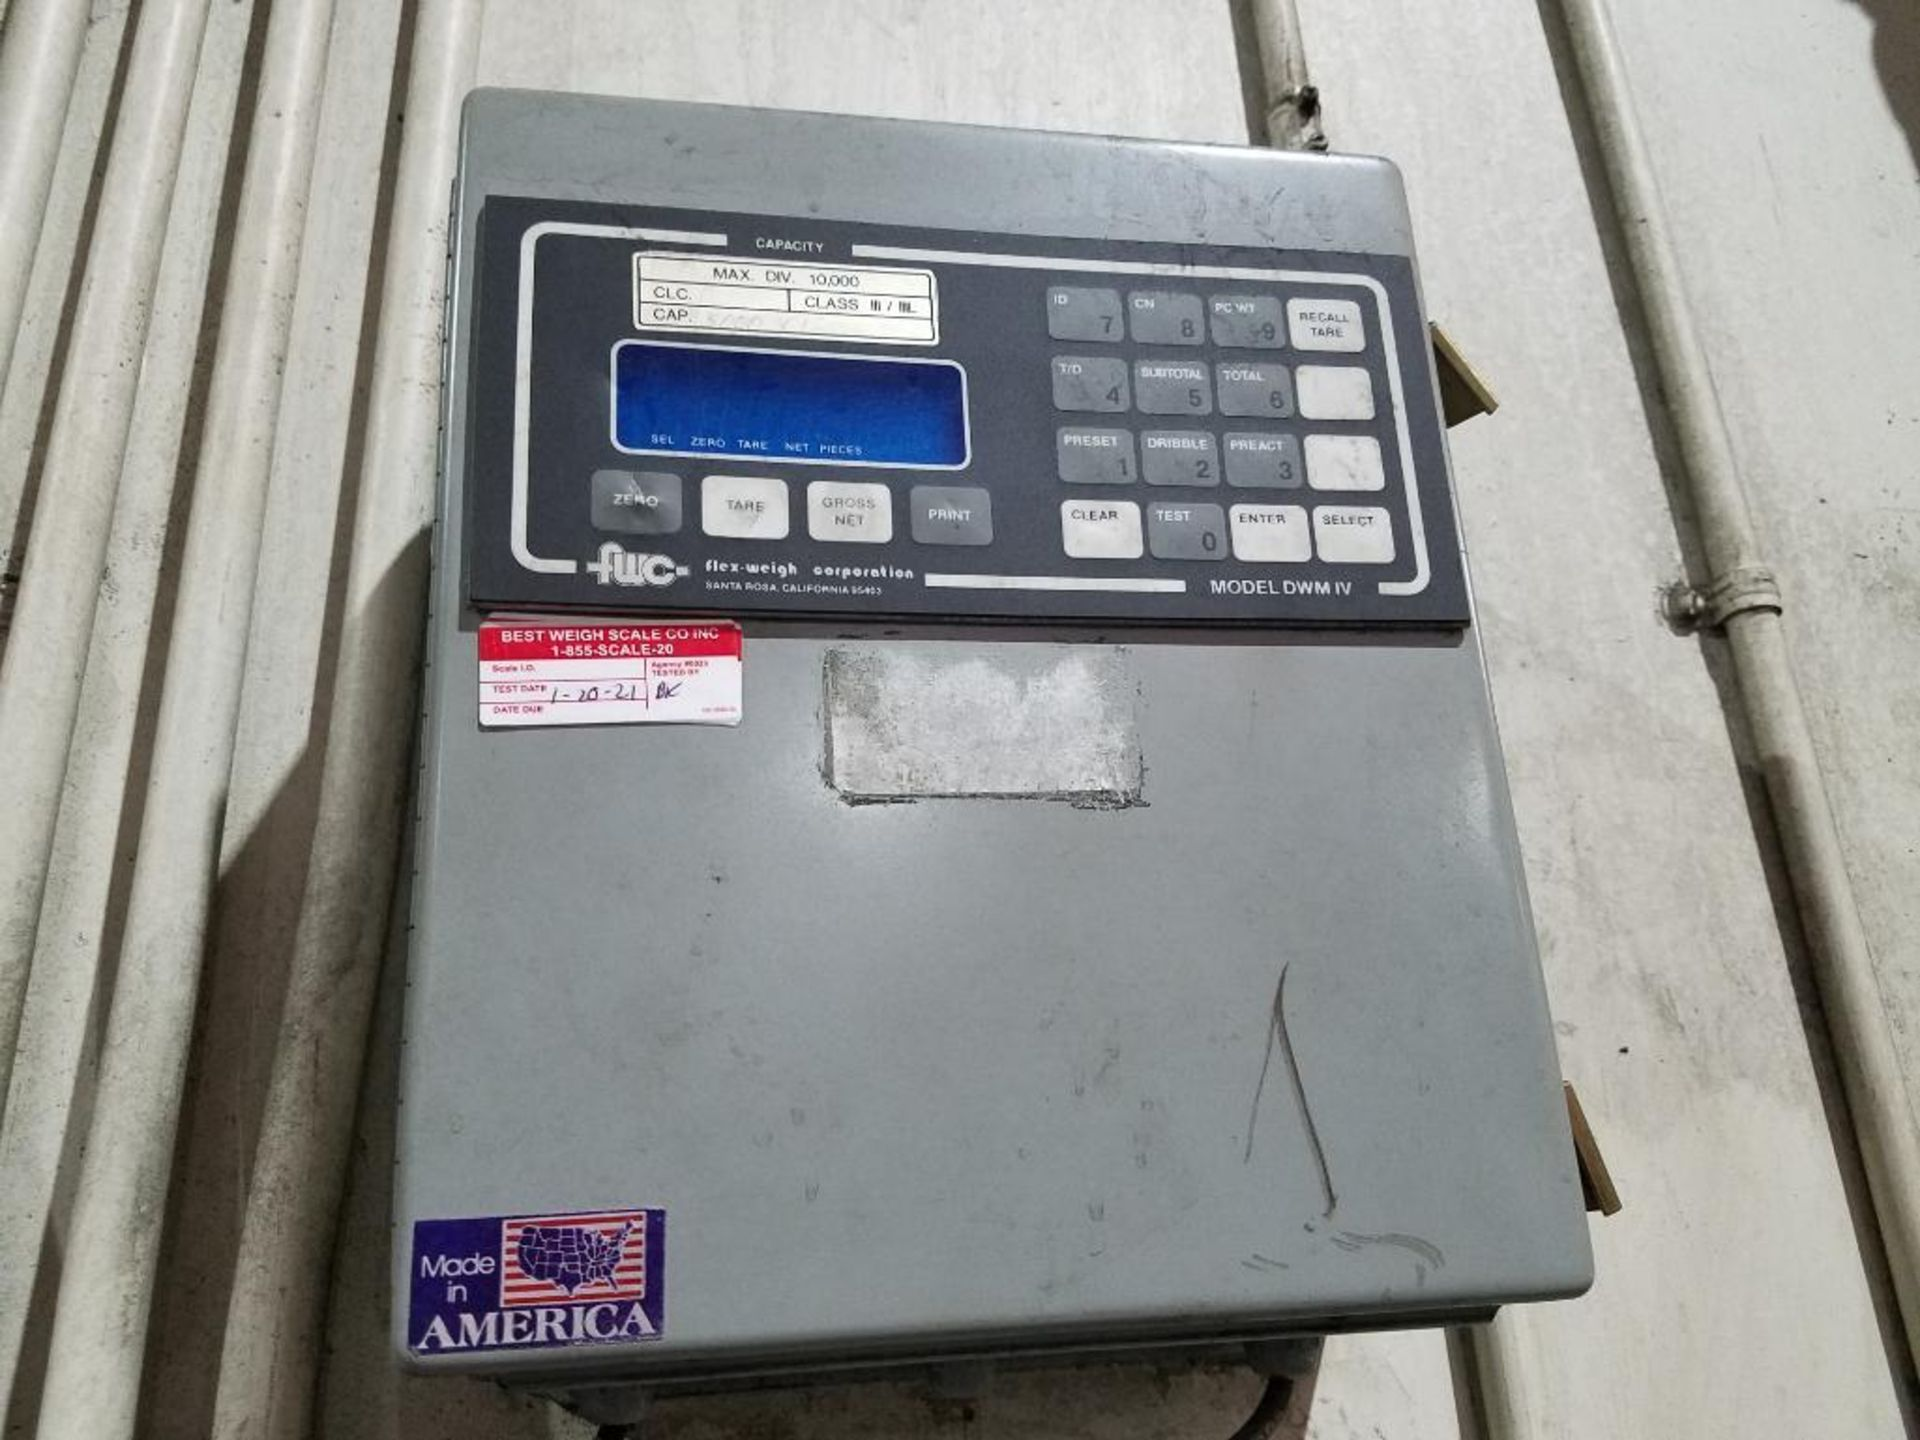 Flex-Weigh 4 ft. x 5 ft. platform scale - Image 2 of 4